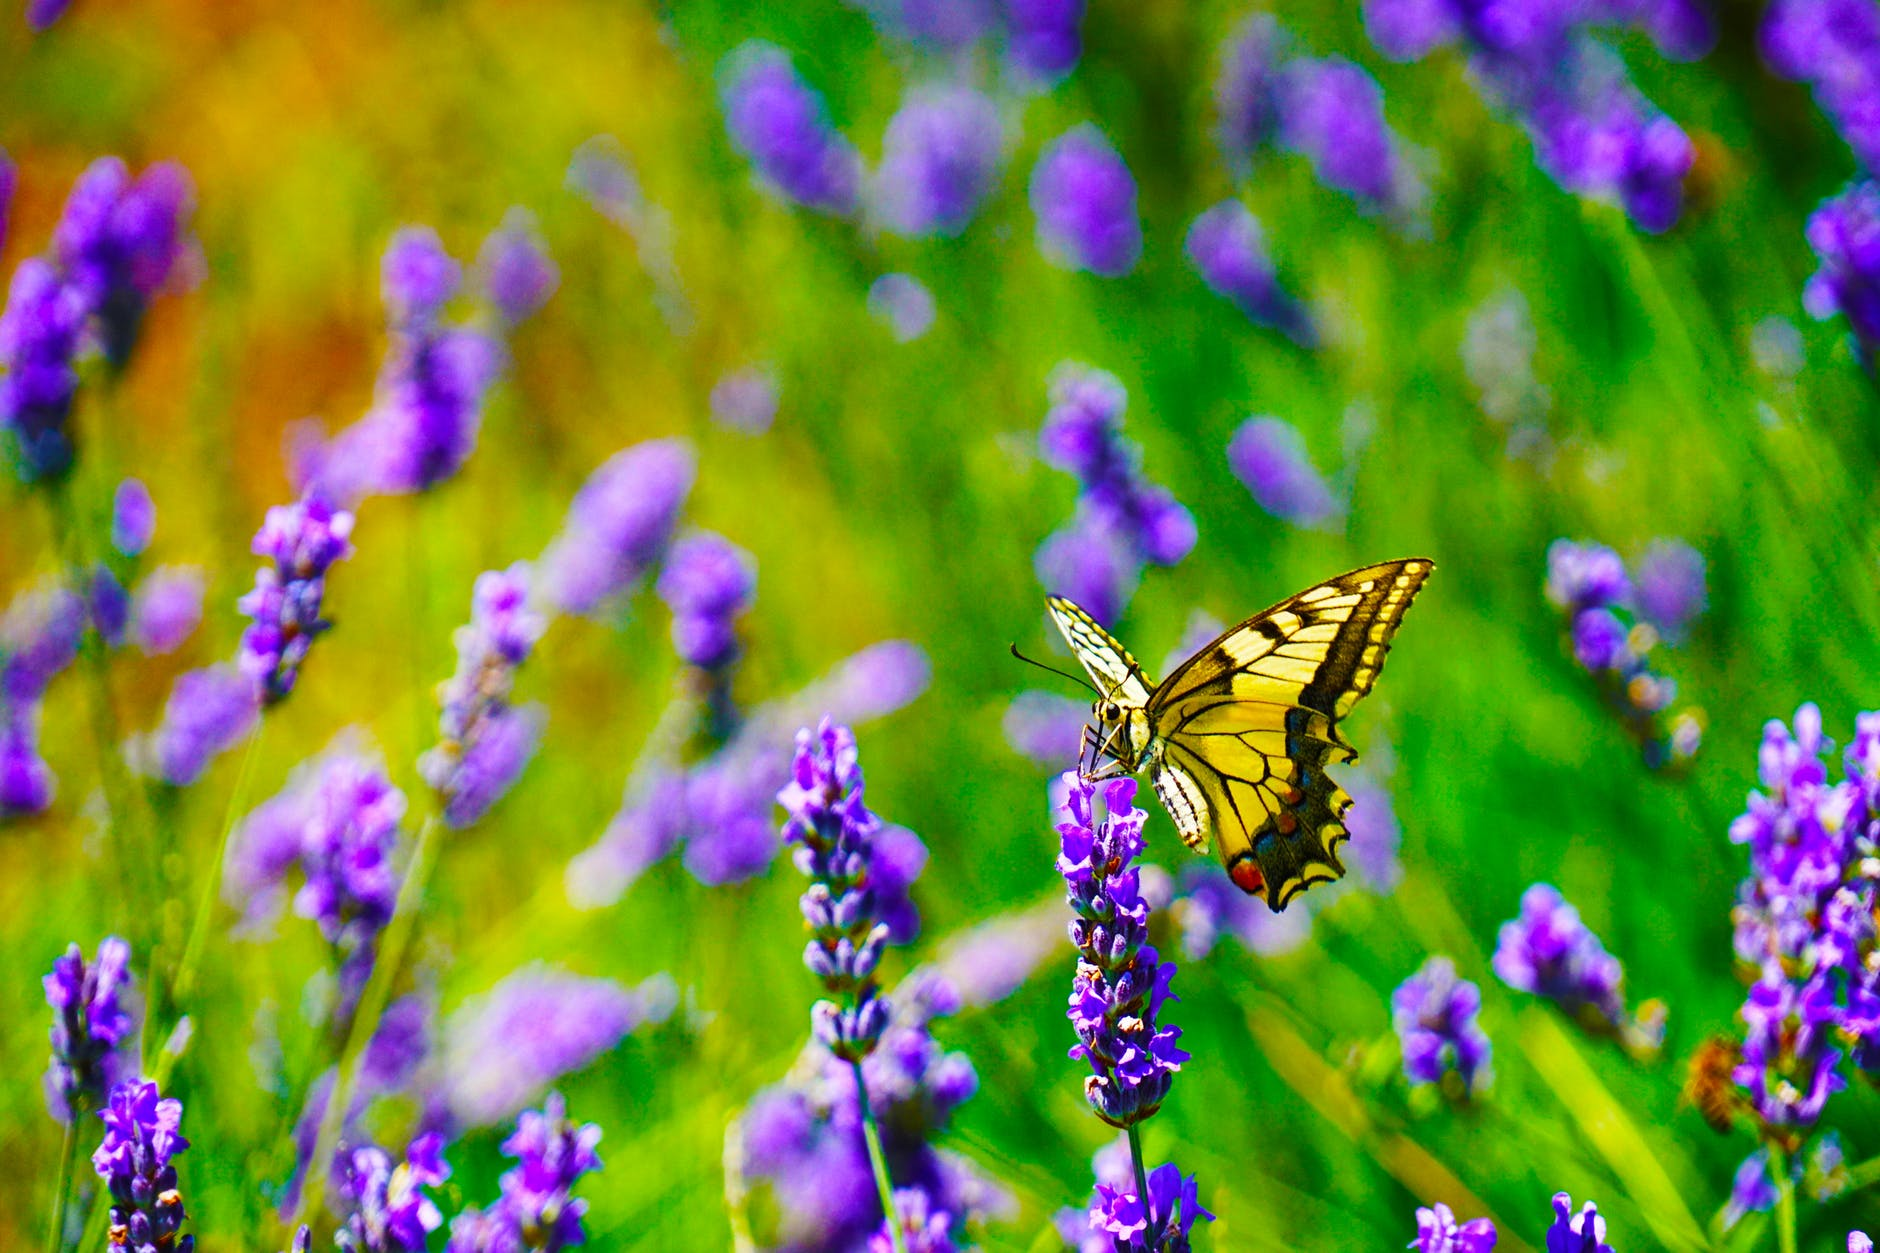 selective focus photography of tiger swallowtail butterfly perched on lavender flower